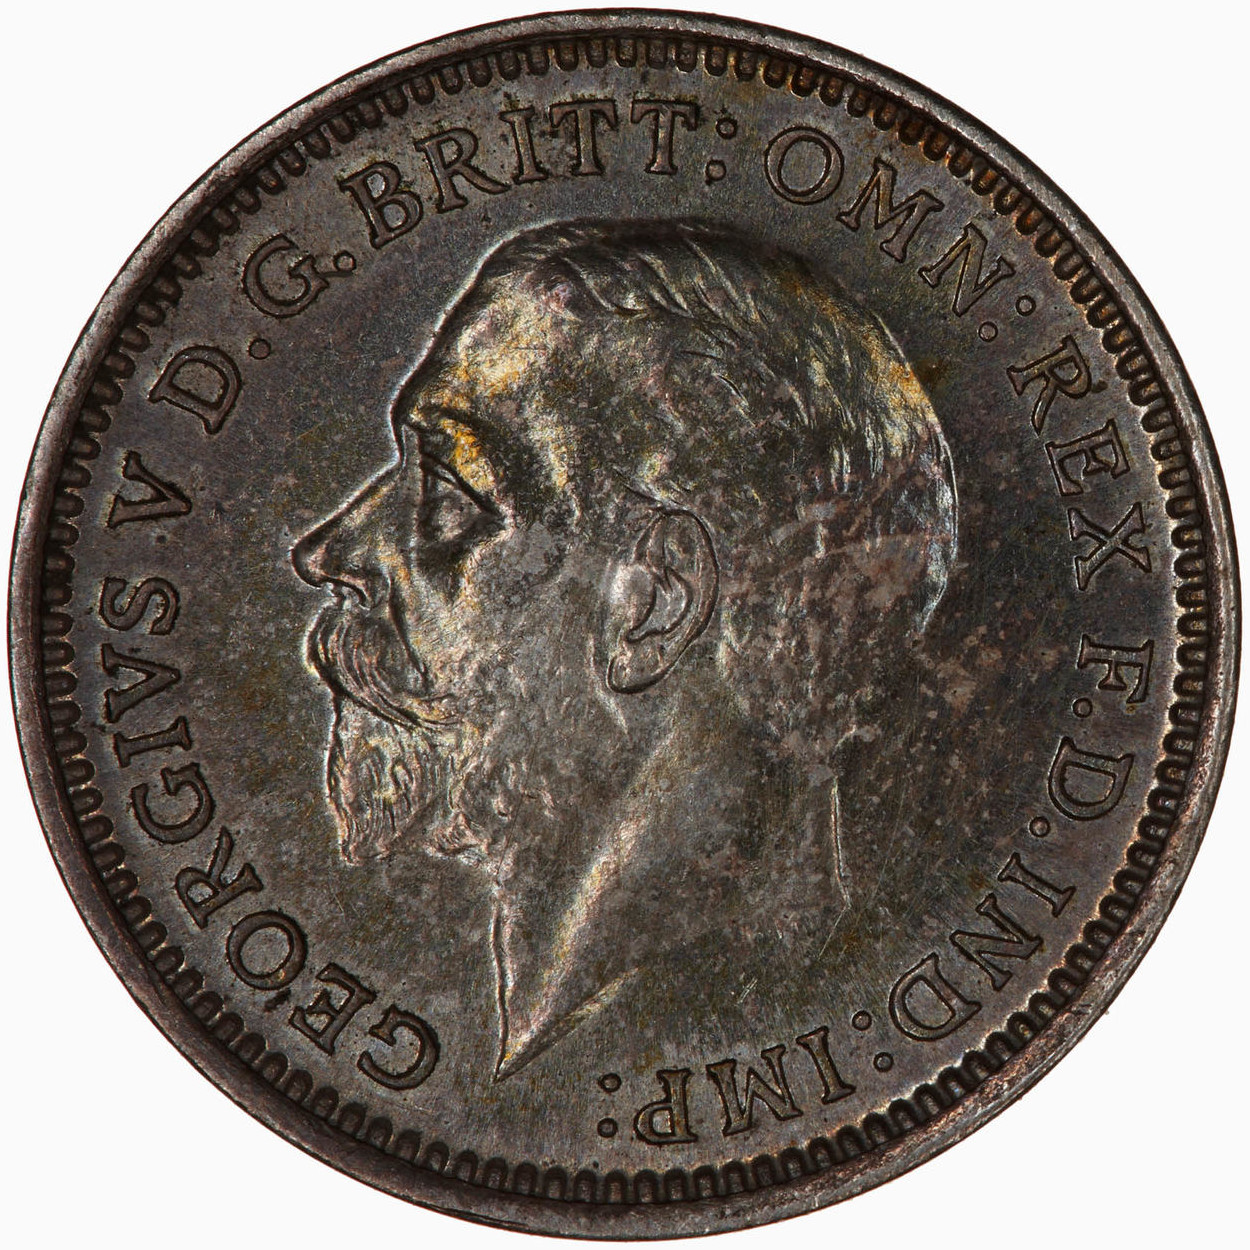 Threepence 1932 (Maundy): Photo Coin - Threepence (Maundy), George V, Great Britain, 1932